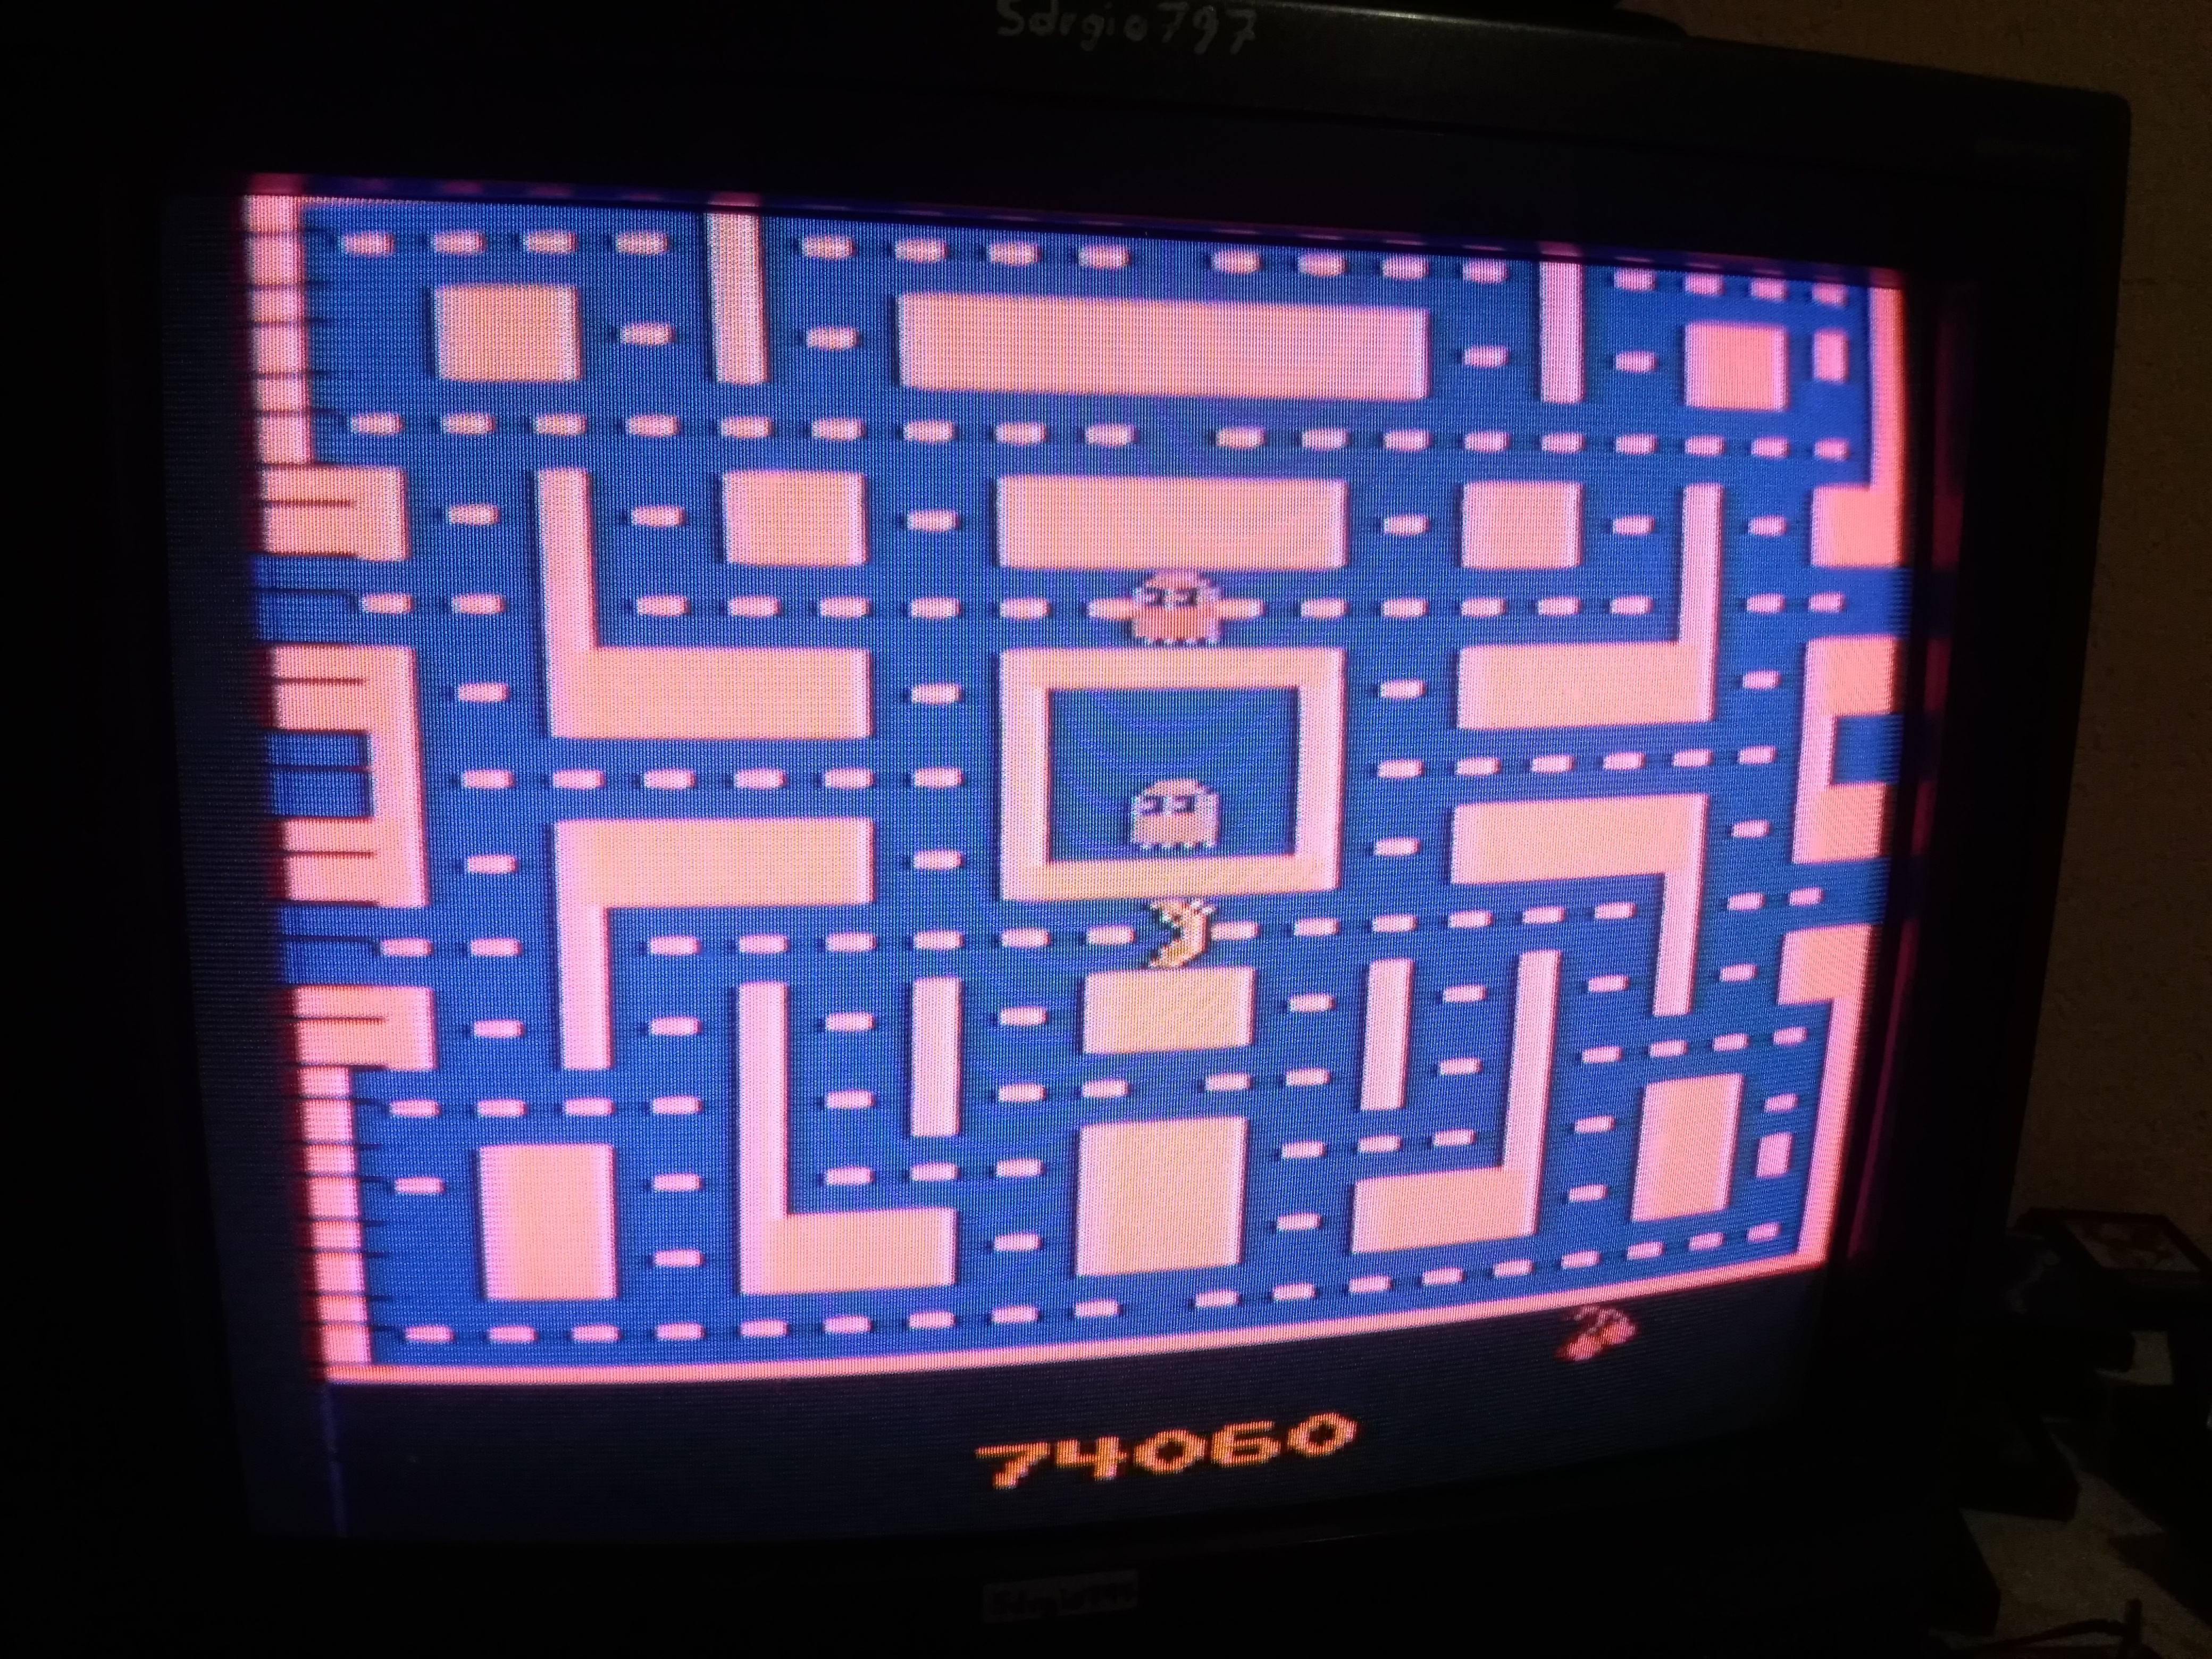 Ms. Pac-Man 74,060 points